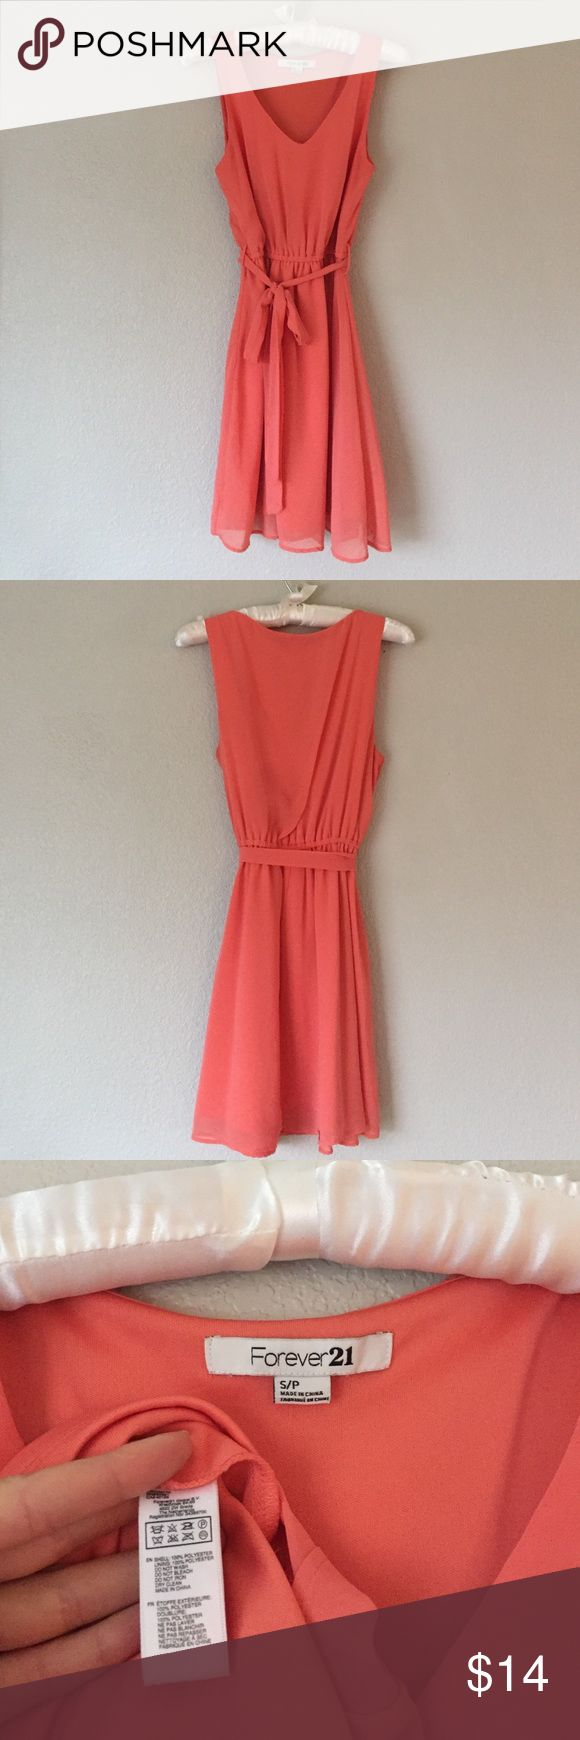 Coral Sundress Coral sundress. Fully lined and in excellent condition. Waist is scrunched and includes a cute tie. 100% Polyester. No trades. Forever 21 Dresses Mini